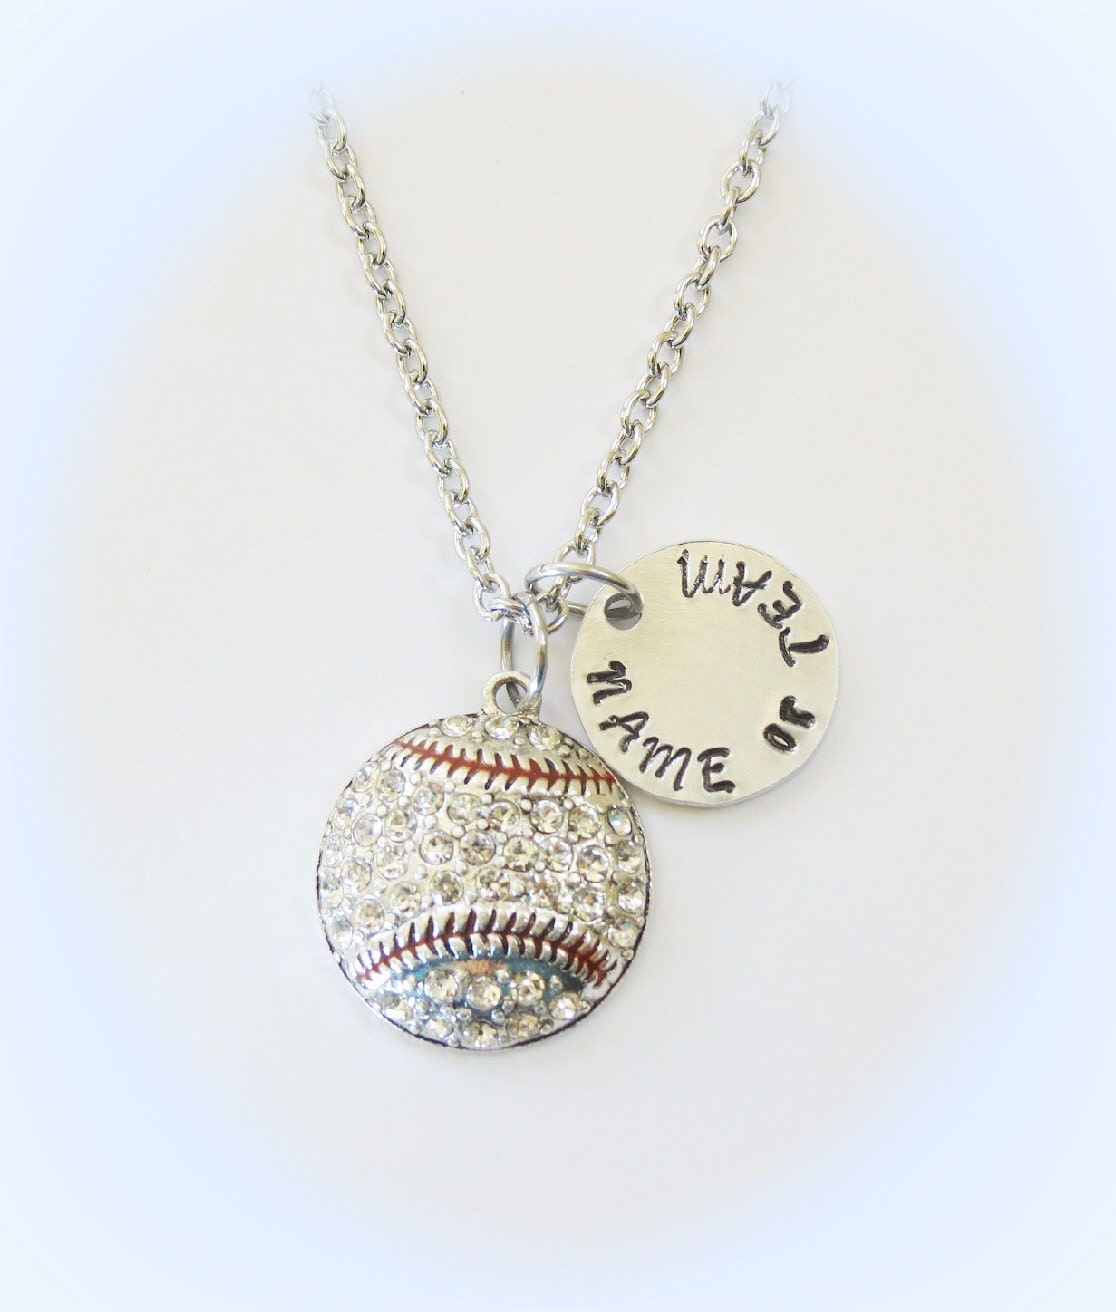 baseball online ce necklace with product softball for on s store pendant access com number dhgate piece